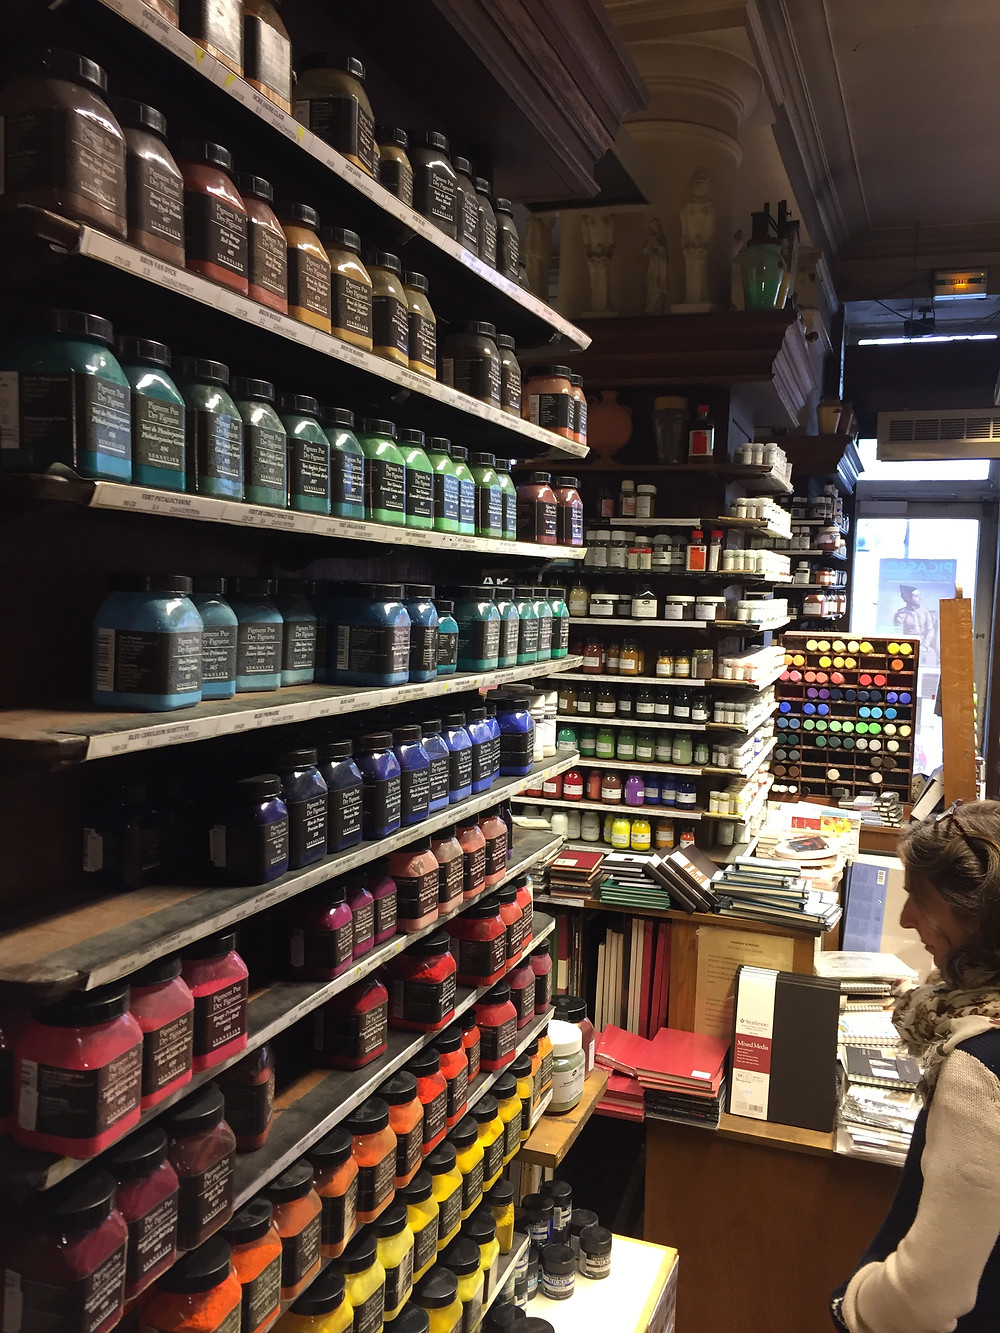 Magasin Sennelier, art store in Paris, with views of shelves of colored powders (pigments to be mixed into paints).